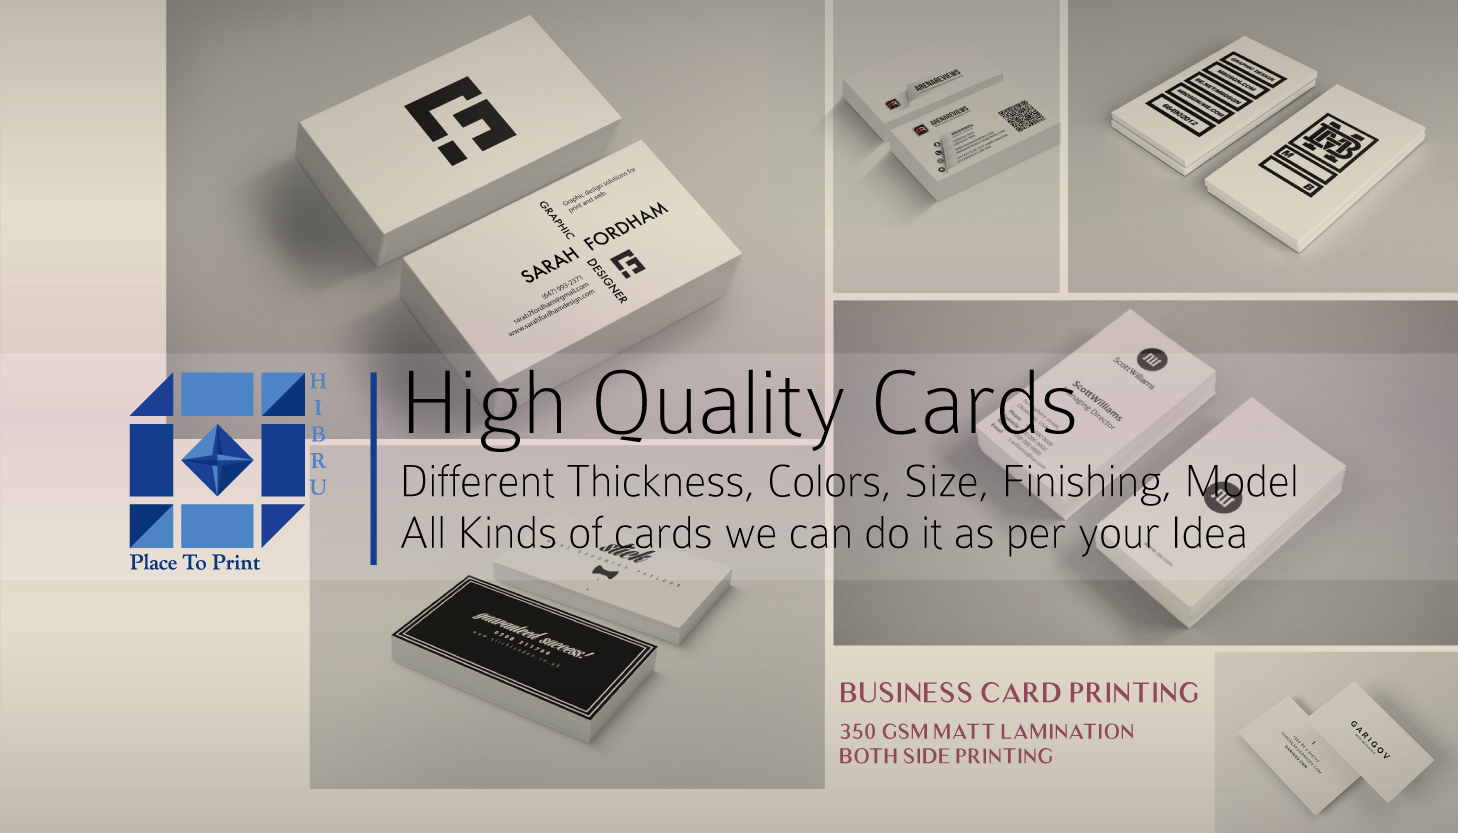 Business card printing best business cards business card template business card printing best business cards business card template business card printing cheap business cards visiting card reheart